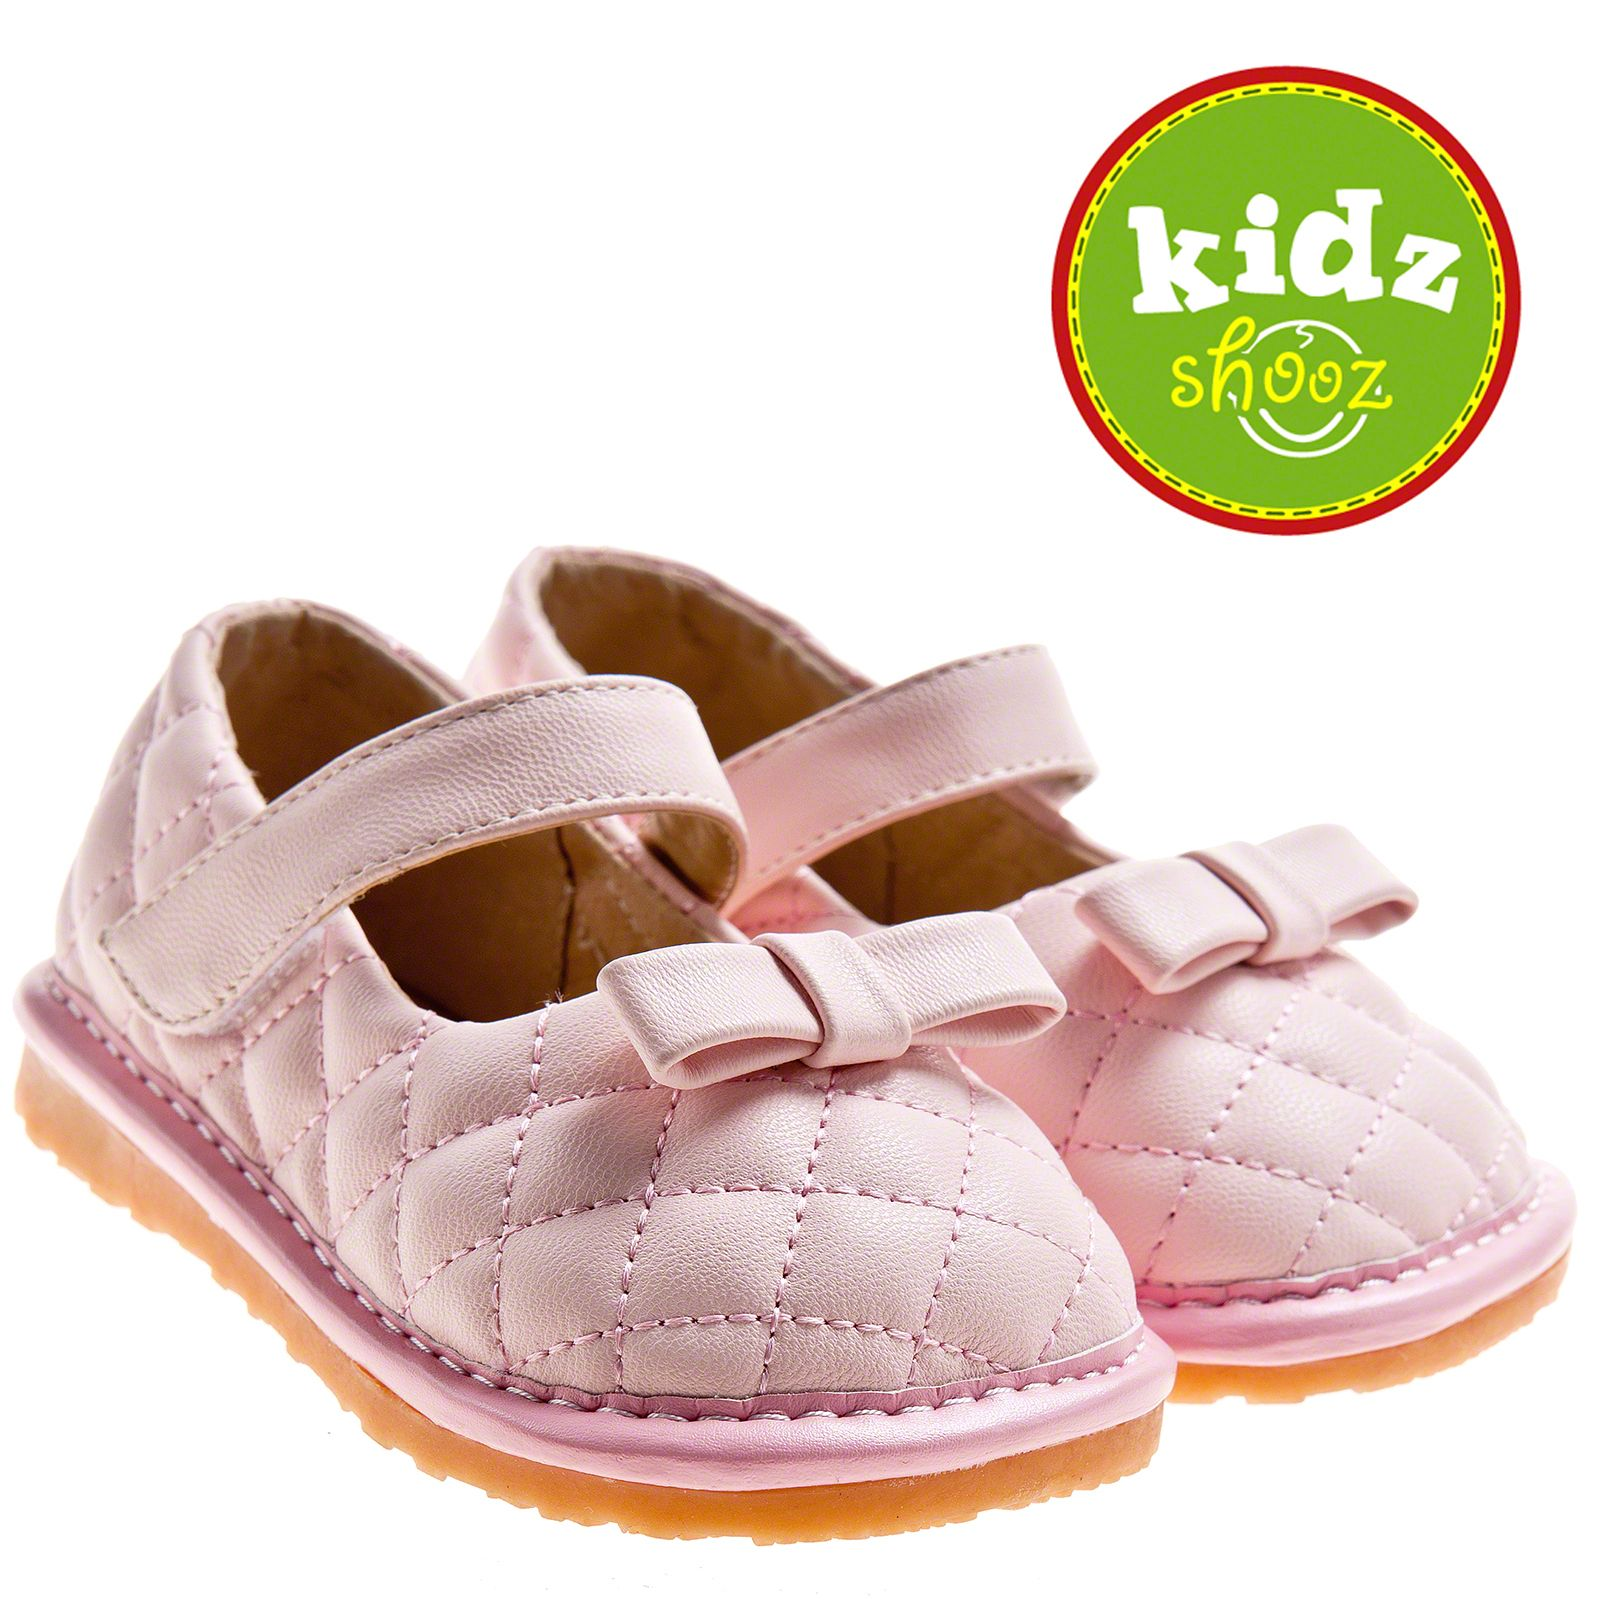 NEW Little Blue Lamb Girls Infant Toddler Leather Squeaky Shoes Pink